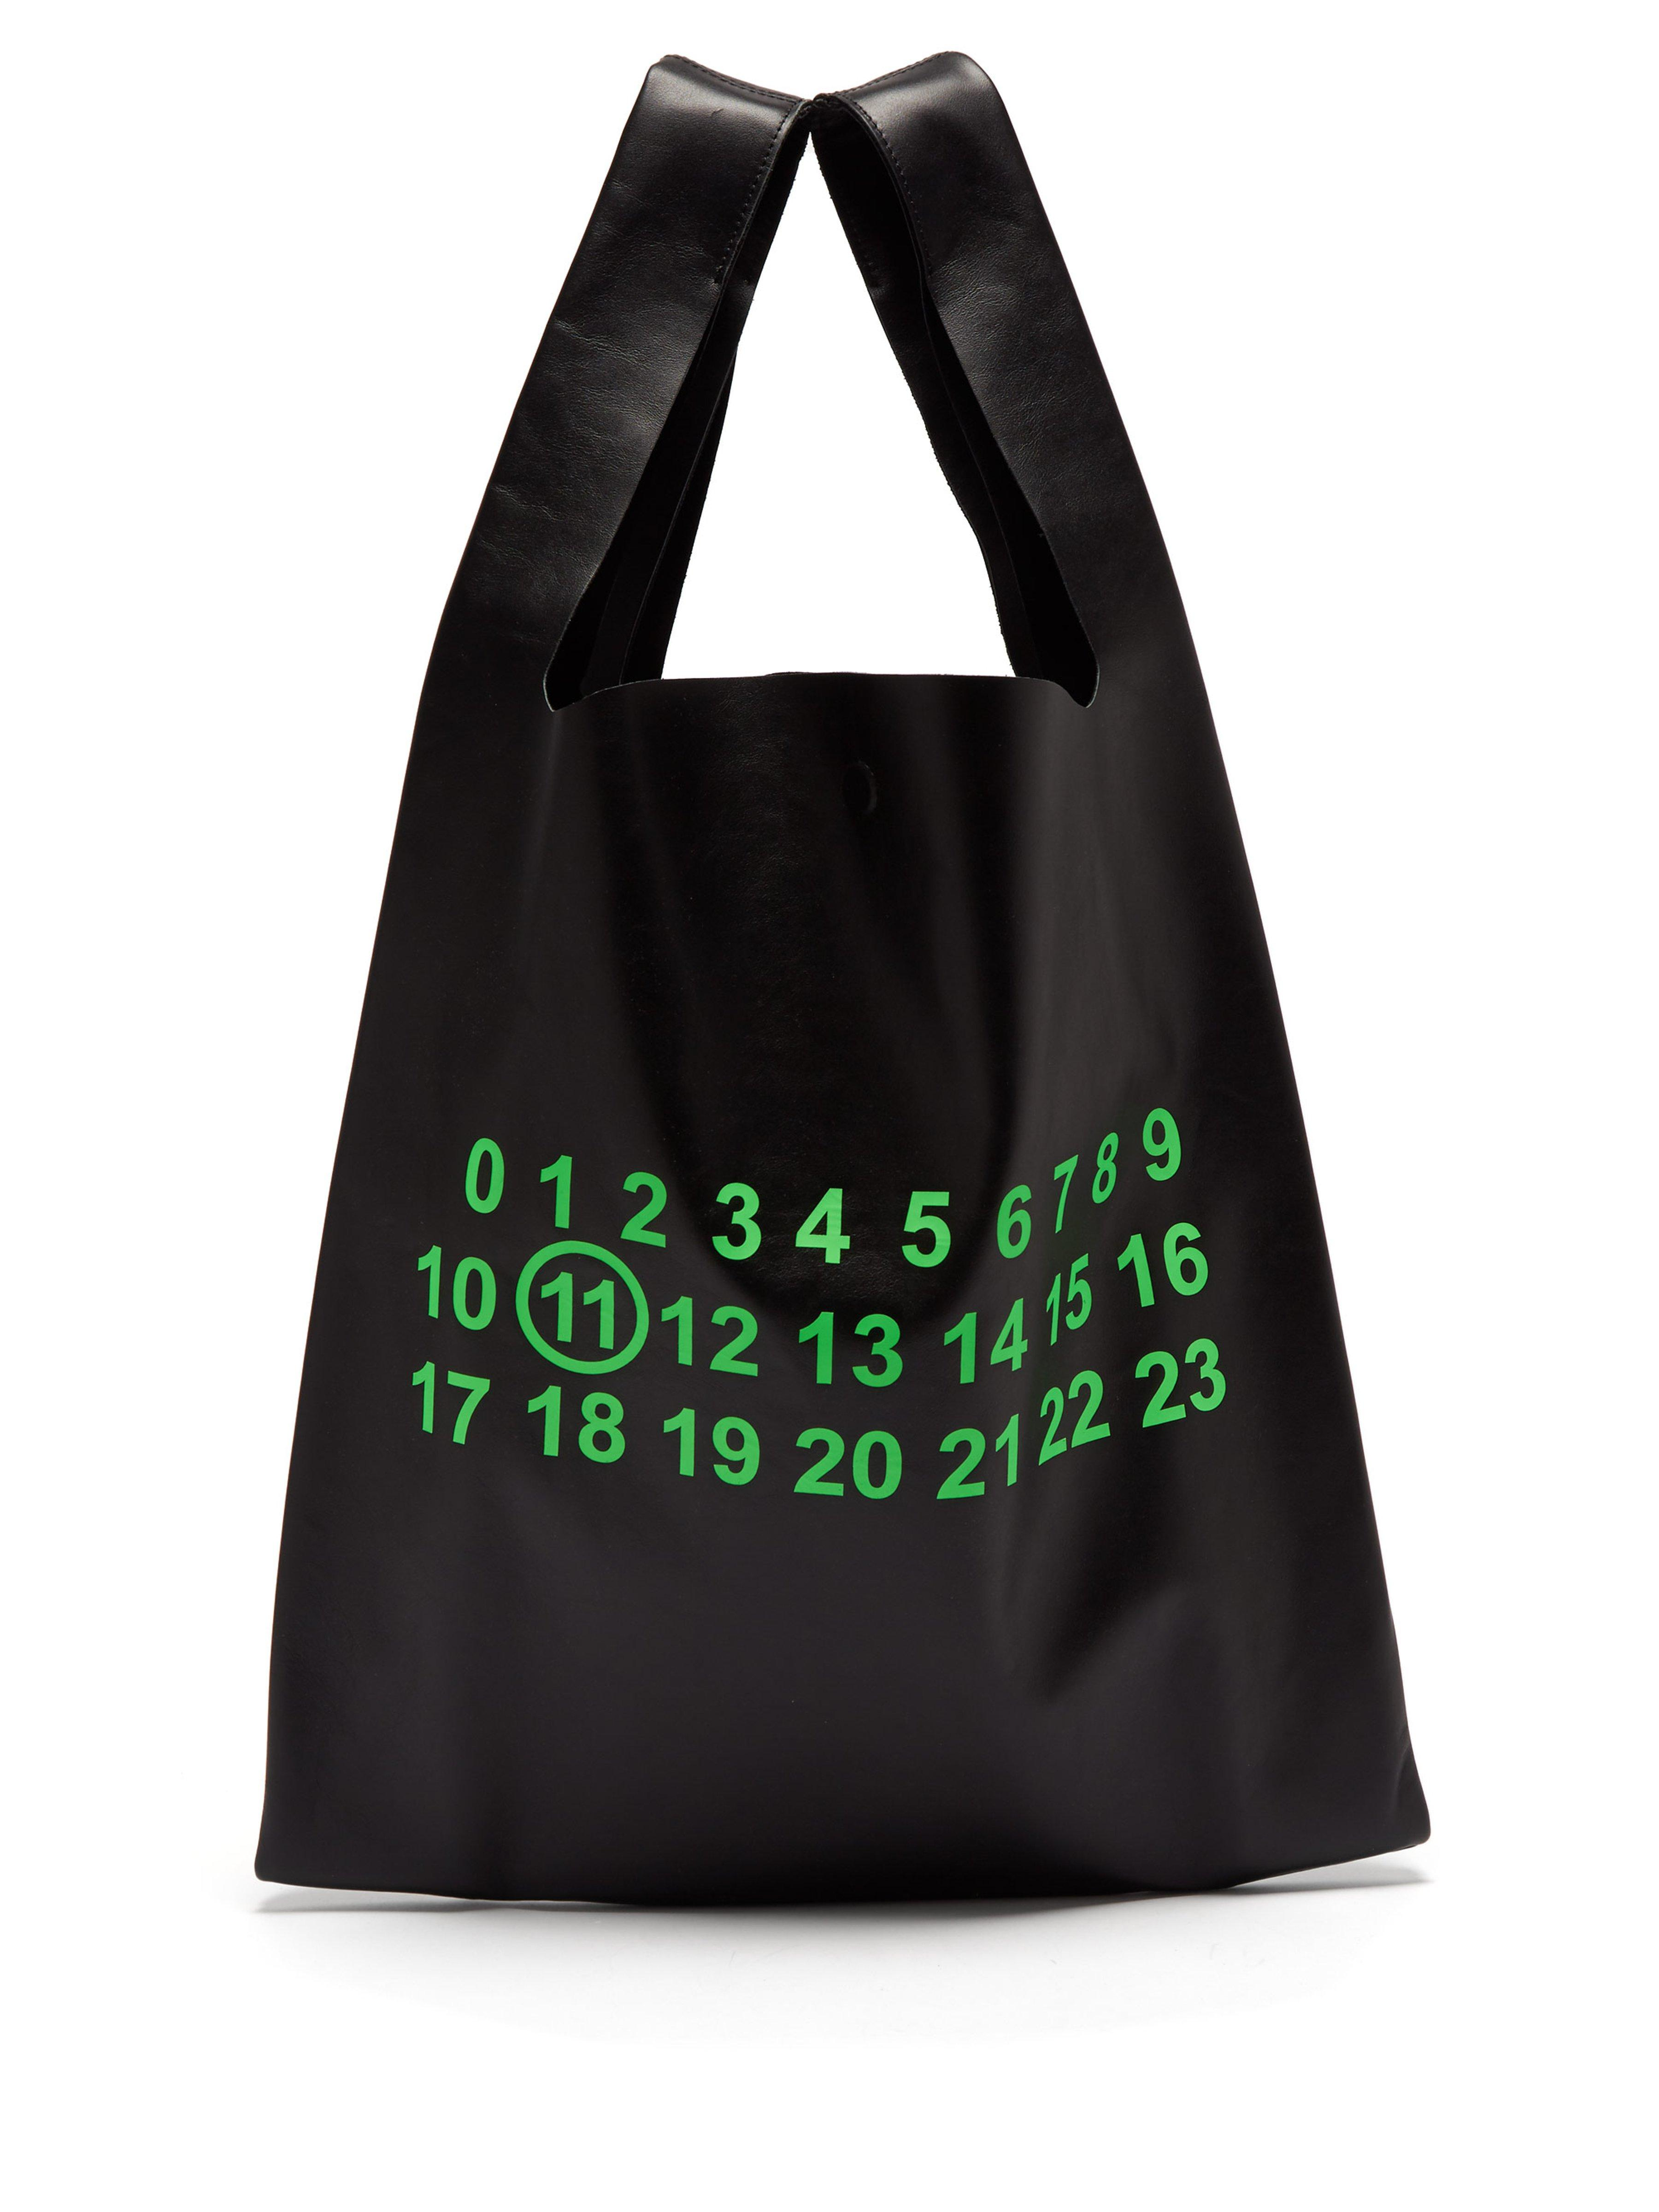 Maison Margiela Logo Shopper Tote Bag in Black for Men - Lyst b68733cec3f